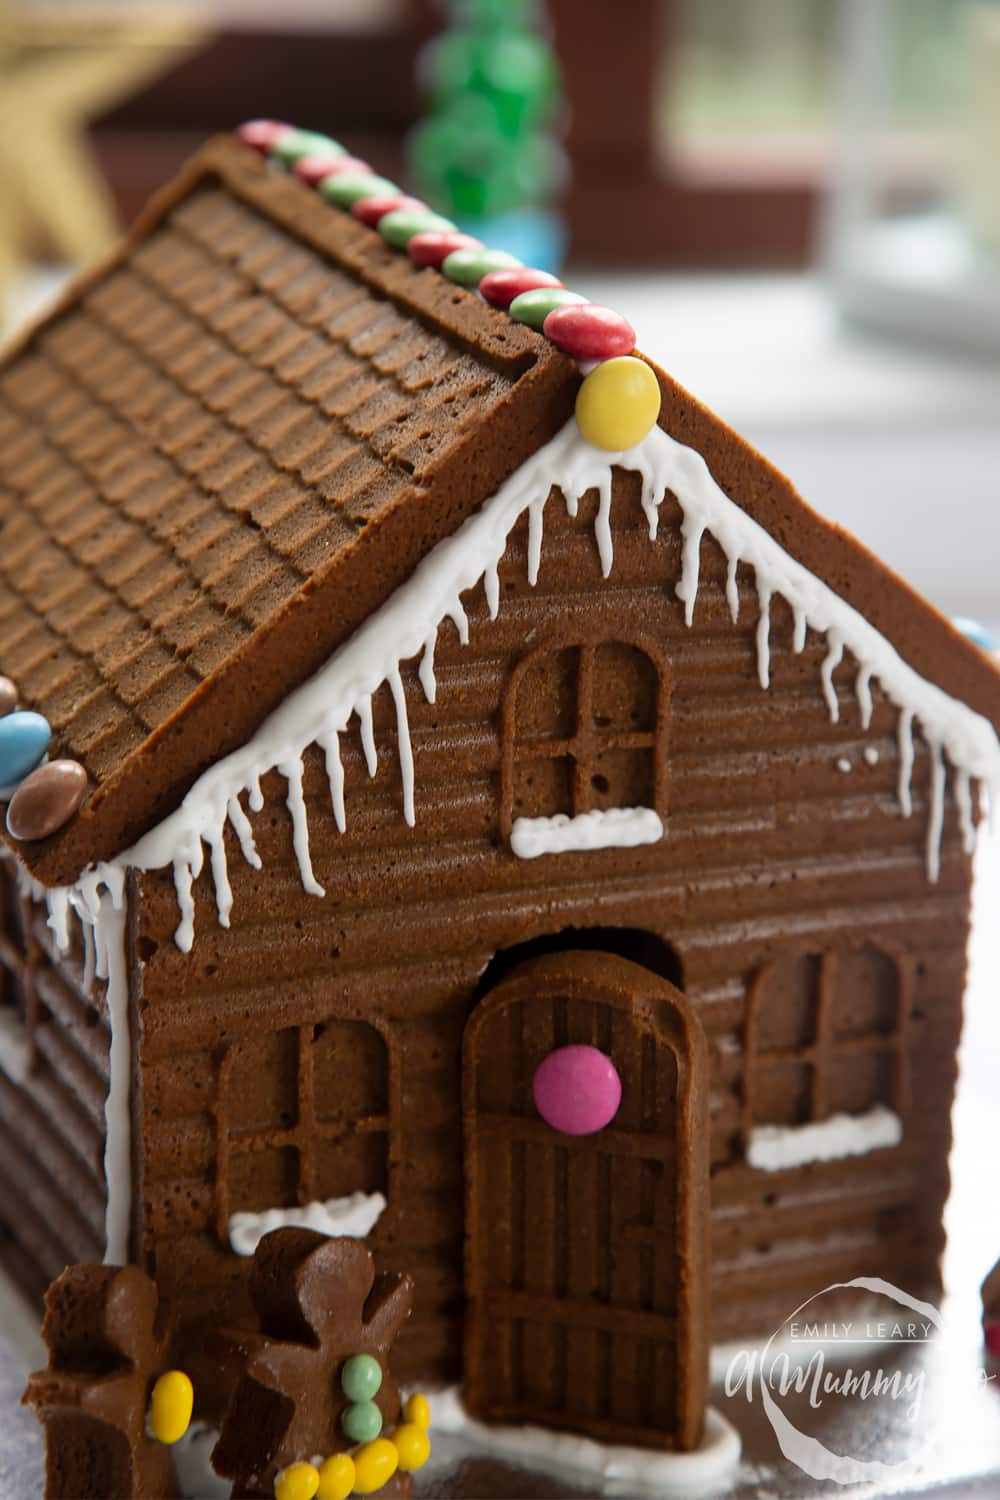 A close up of a detailed gingerbread house on a silver board. Royal icing has been piped along the edges of the roof to resemble snow and icicles.